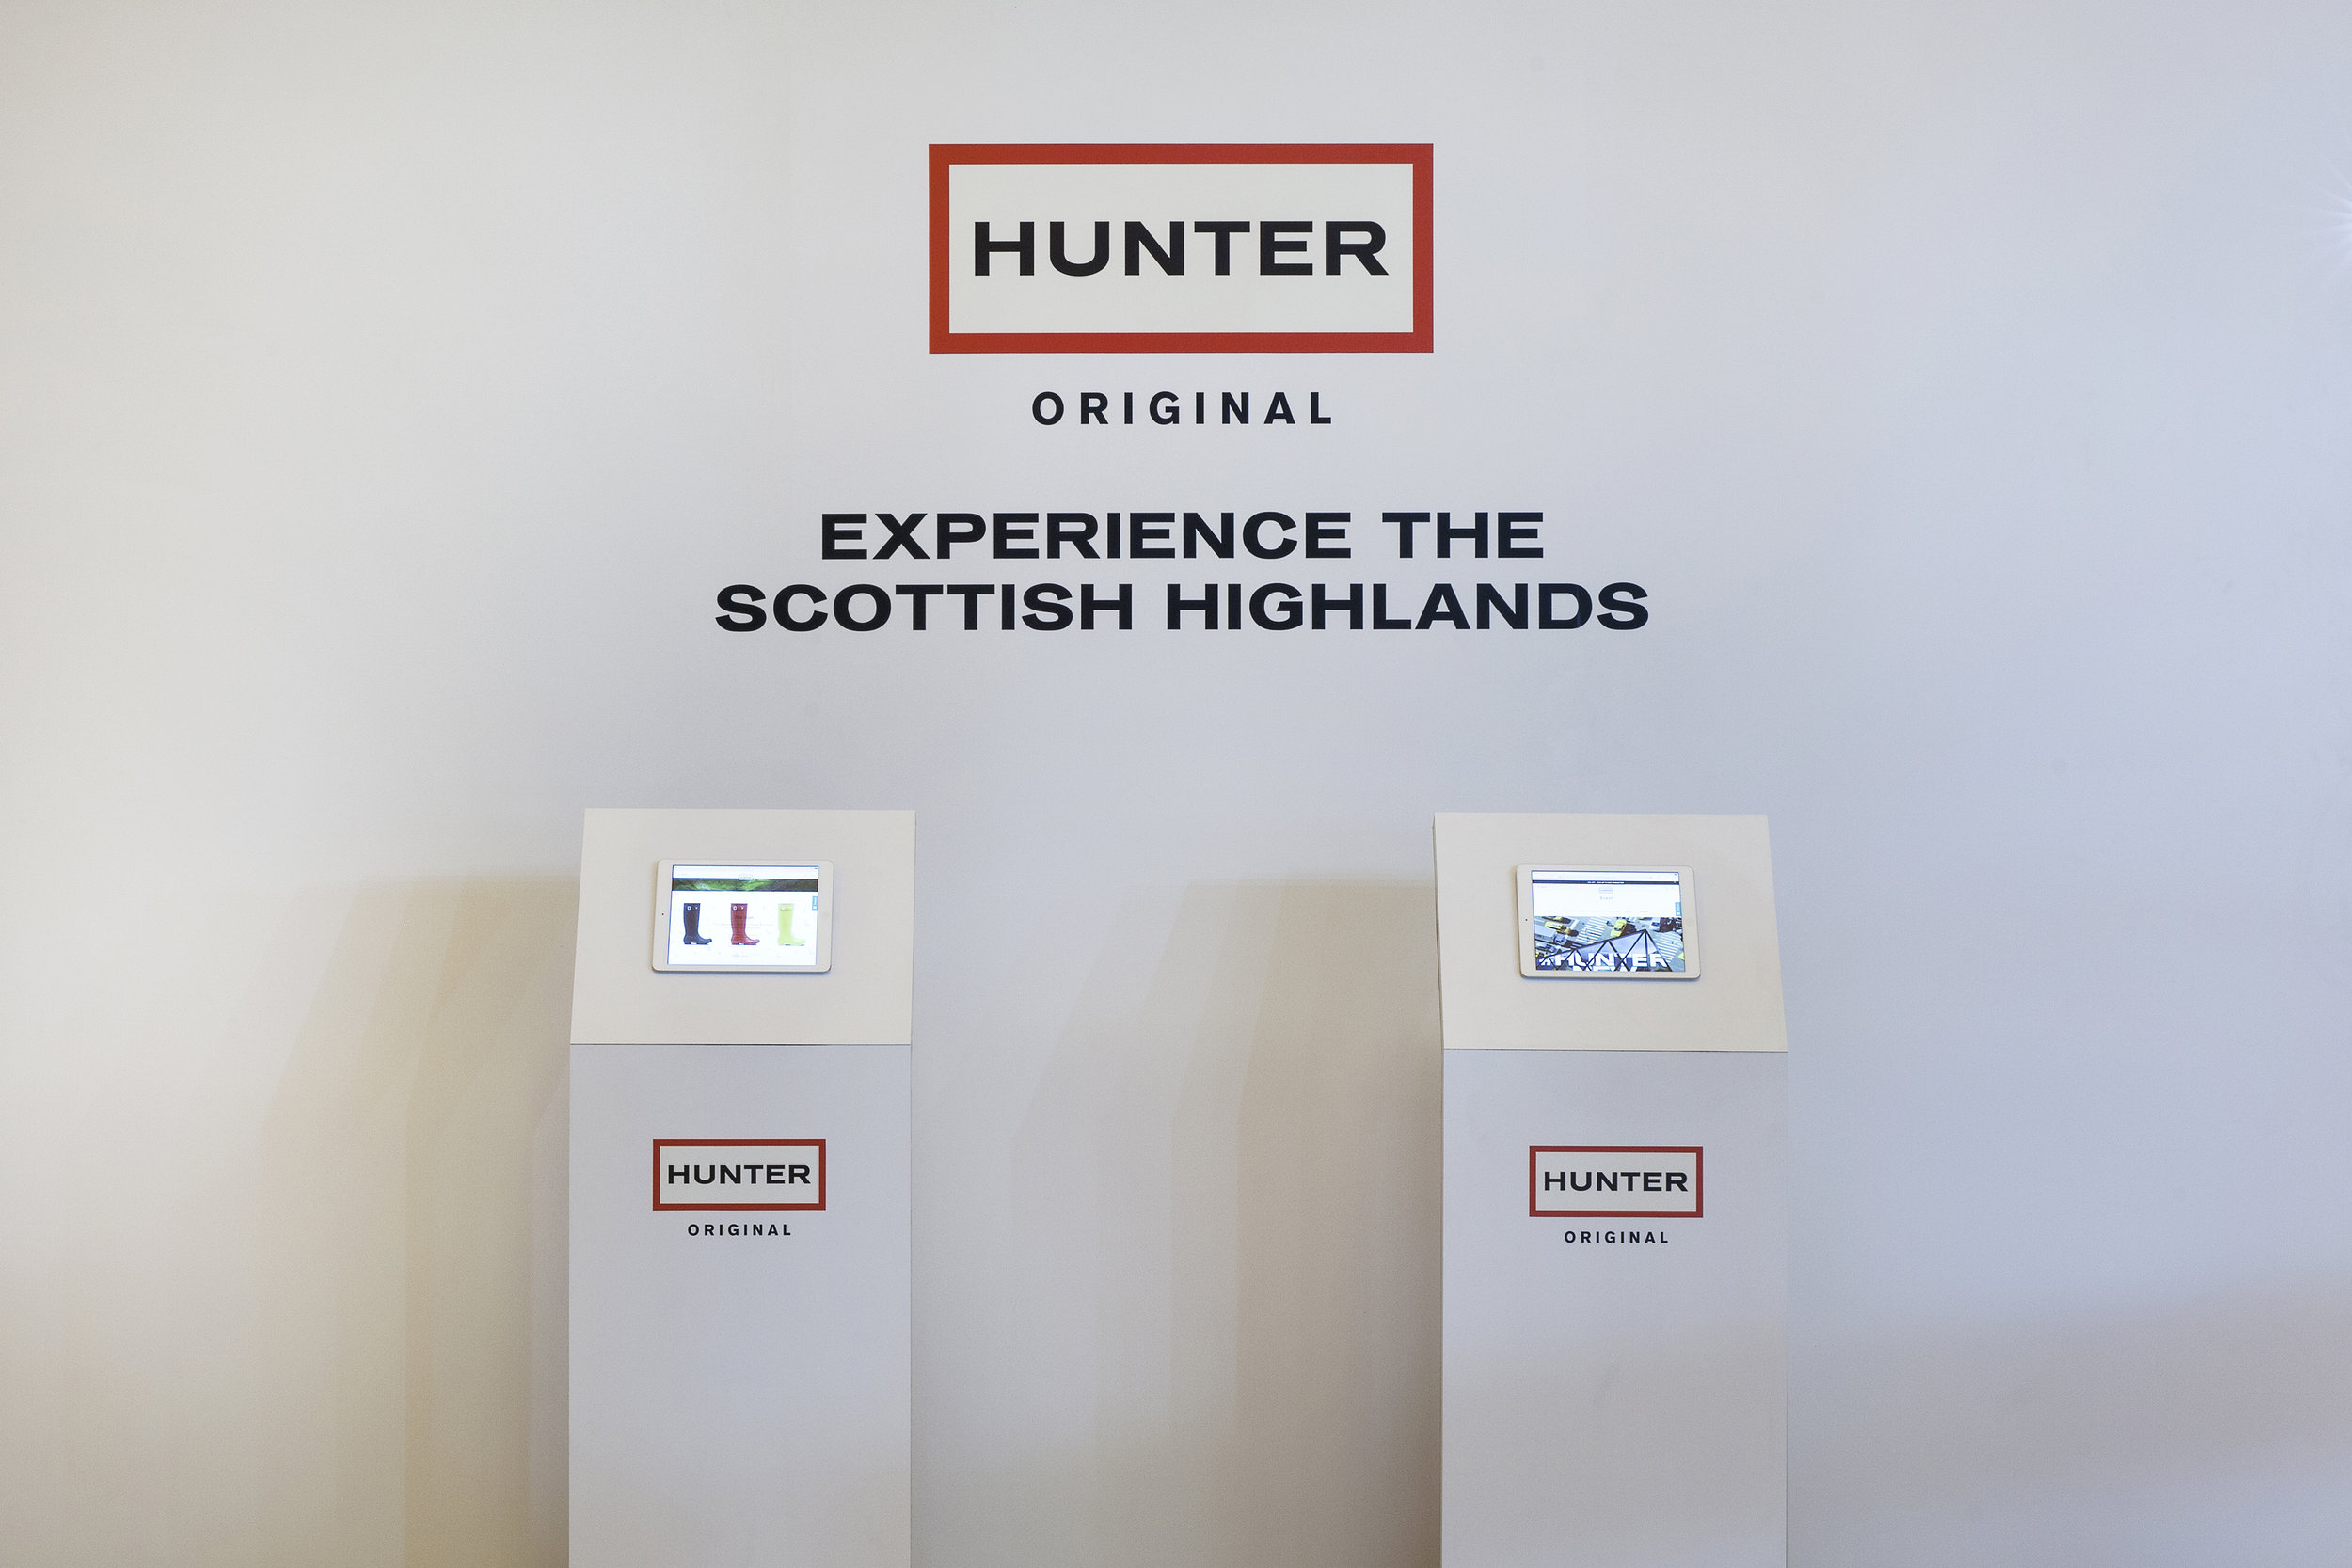 Hunter Boots, Grand Central Terminal, Vanderbilt Hall, Experiential Marketing, Pop-up Event, Events, B2C, Hunter Greenhouse, Cloud House, Brand Stunt, Invisible North, Brand Activation, Brand Experience, Production, Design, Agency, Event Marketing, iPad display